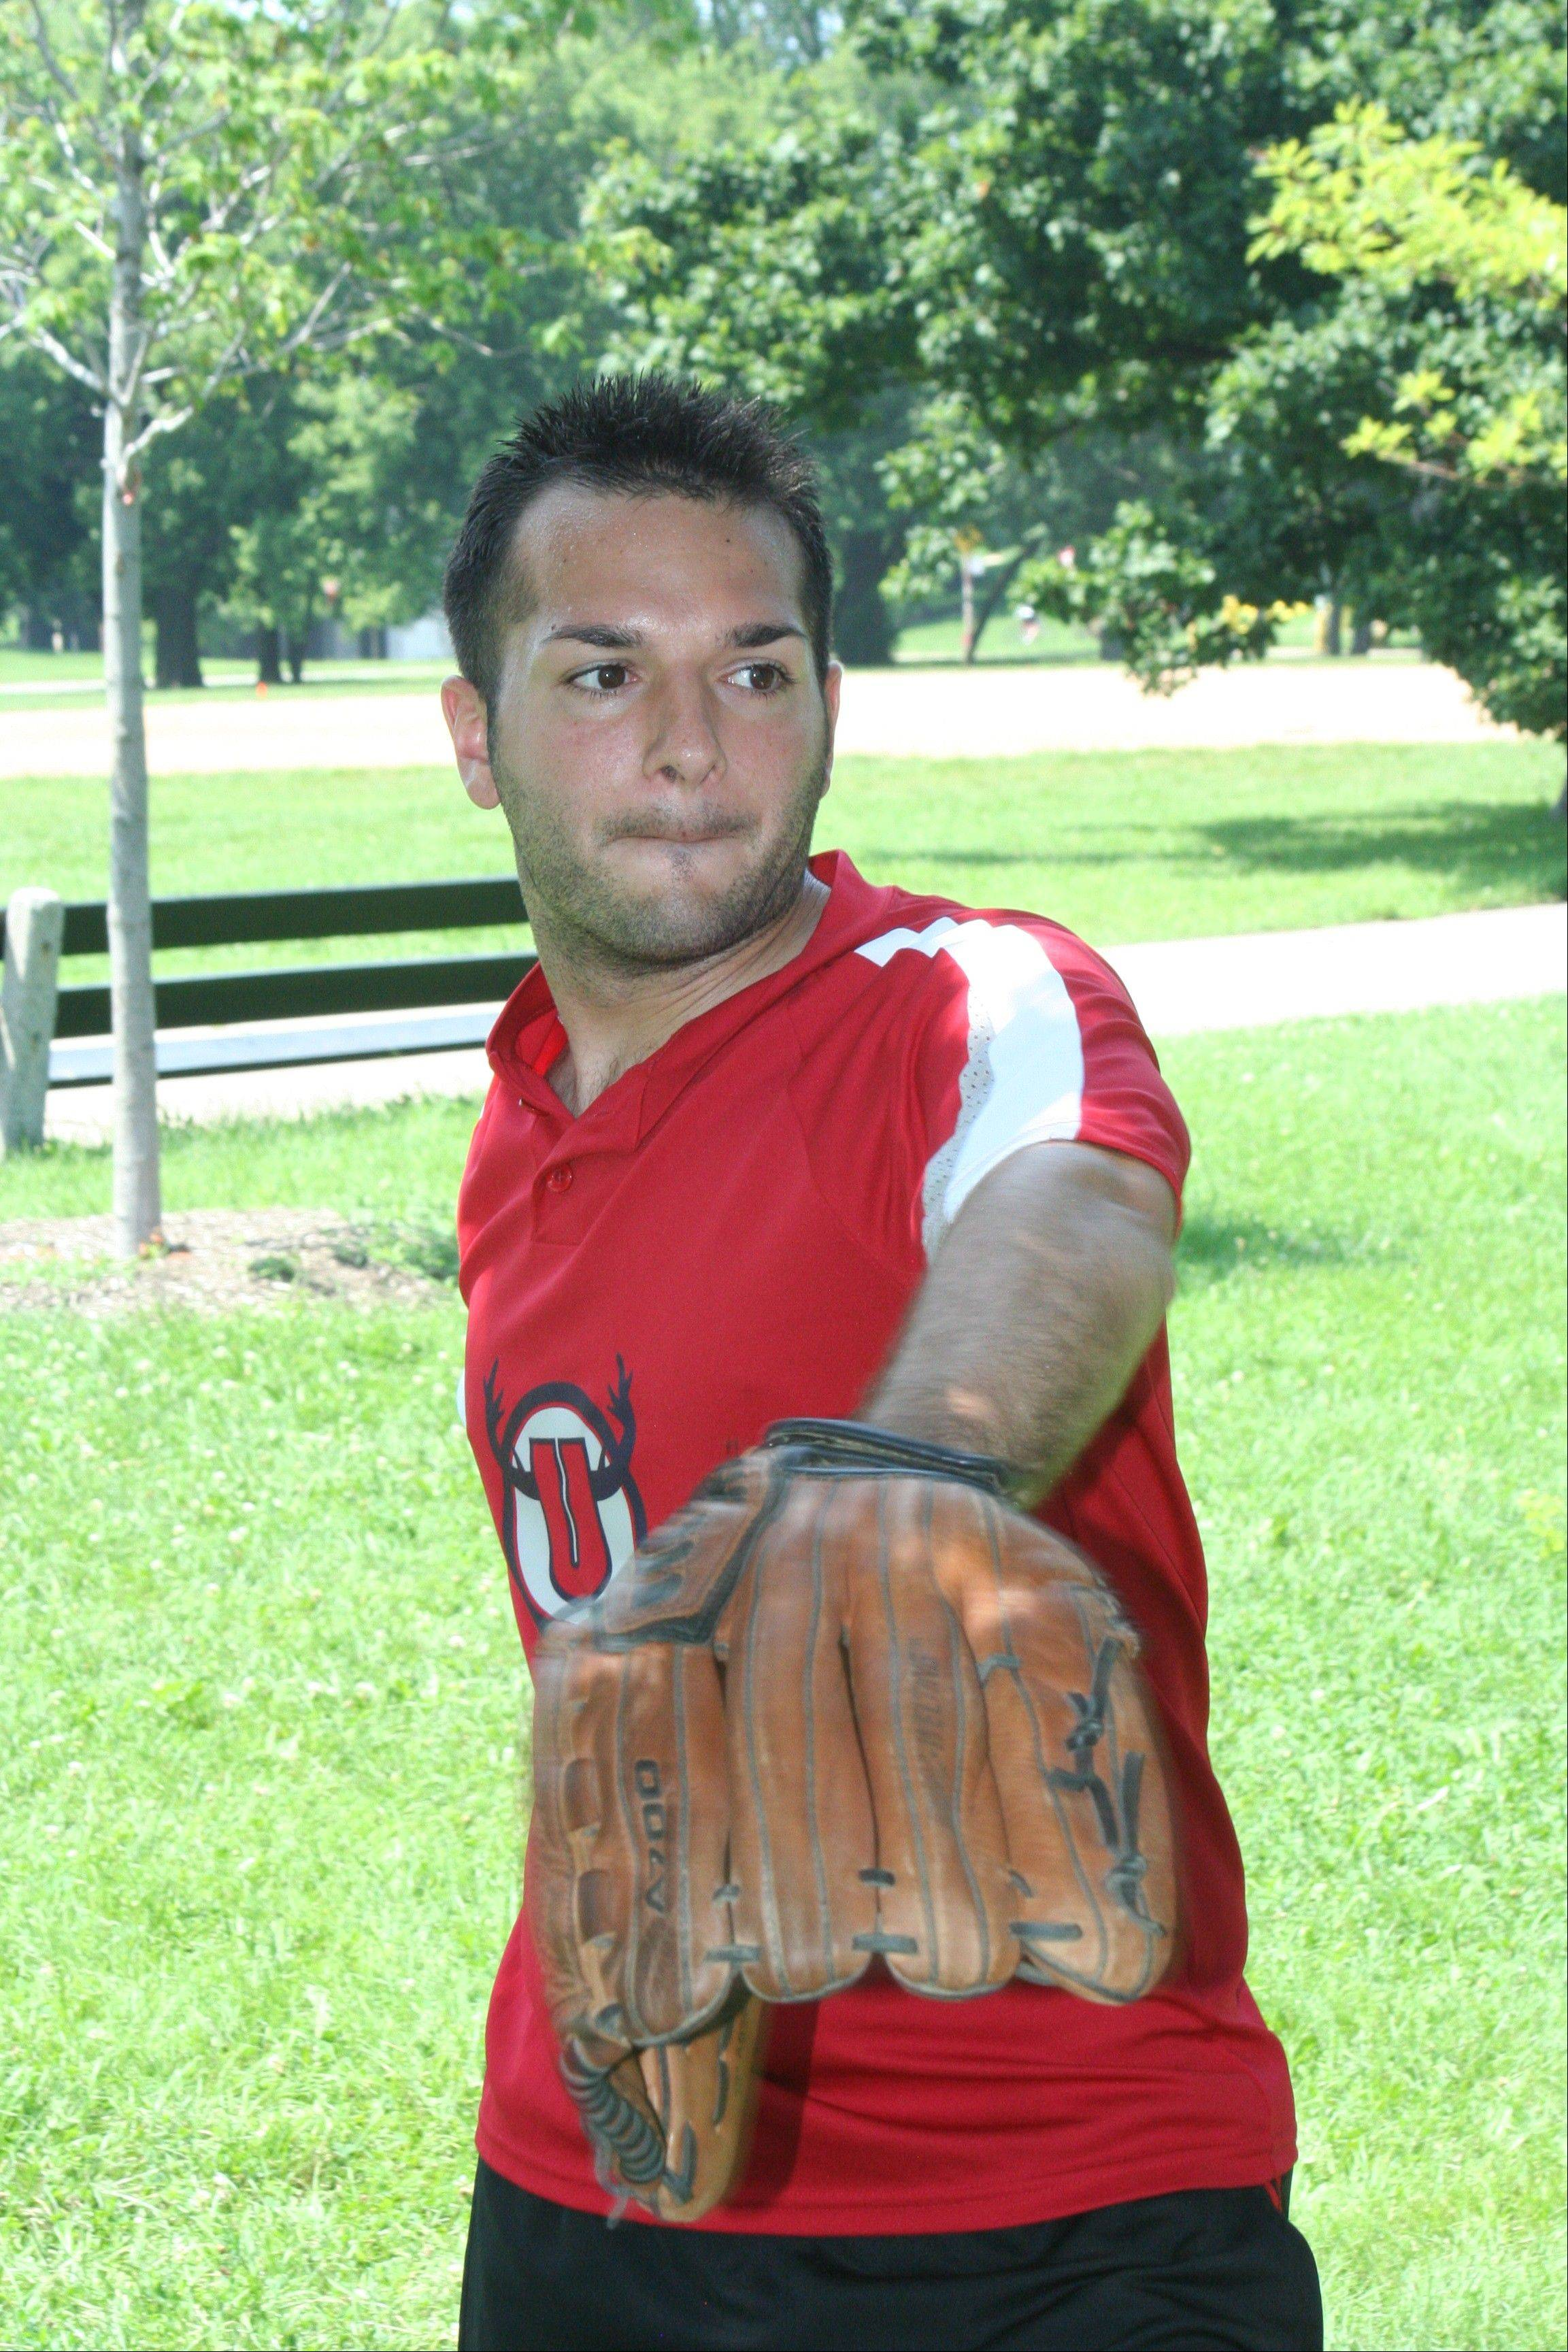 Jeff Book, 29, of Elk Grove Village, will be on one of the 150 teams playing in this week's Gay Softball World Series.